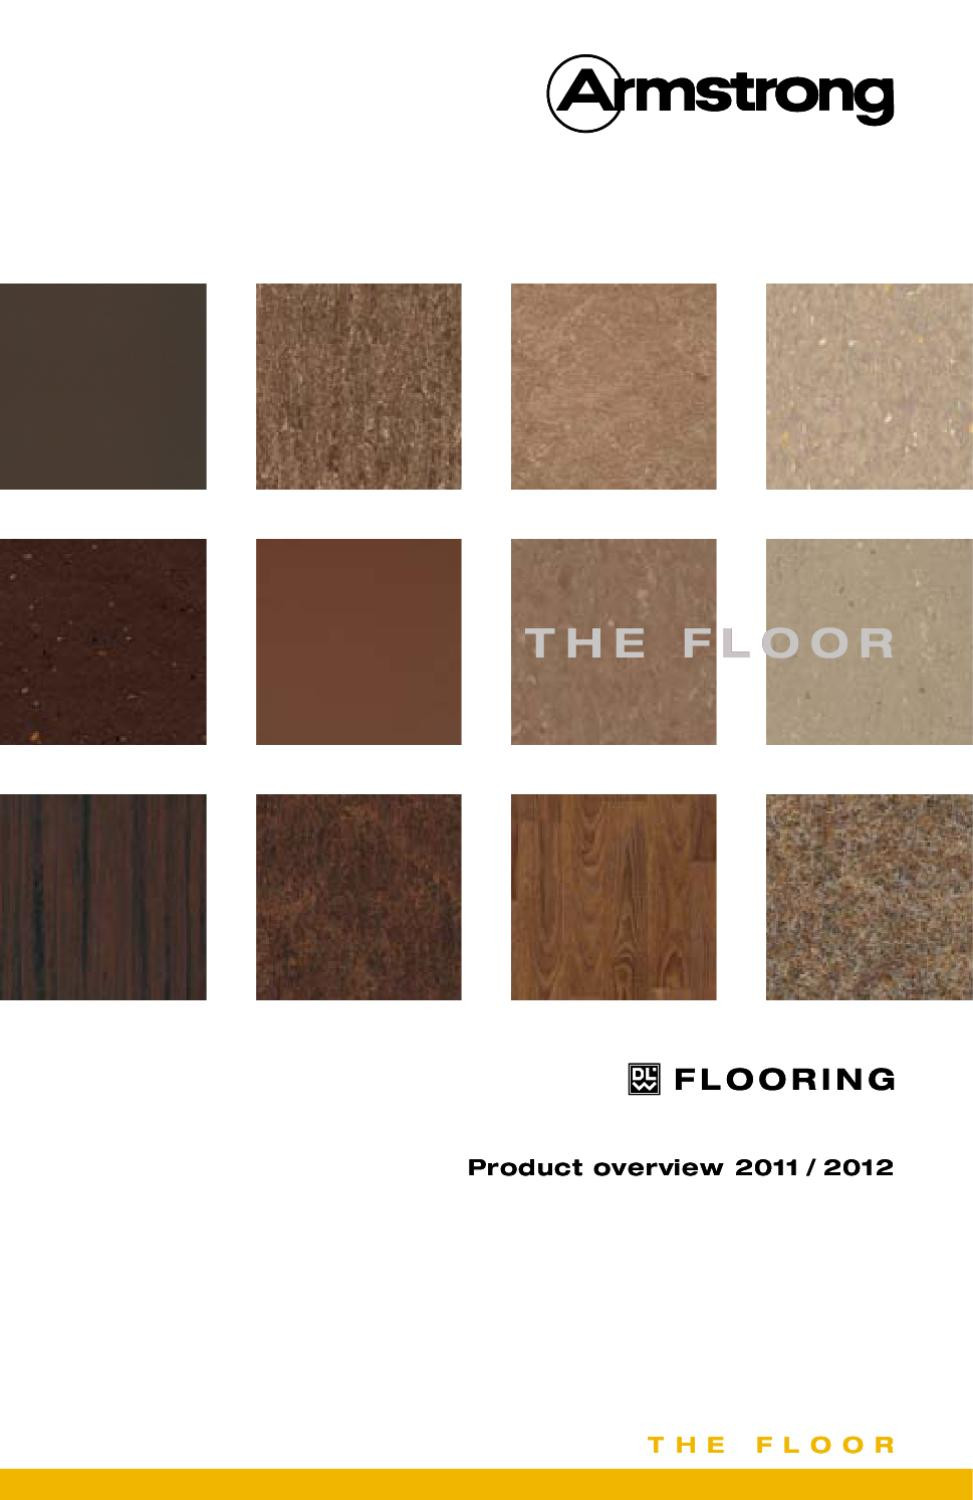 armstrong hardwood flooring company of catalogue thefloor gb by augusto ricca issuu with page 1